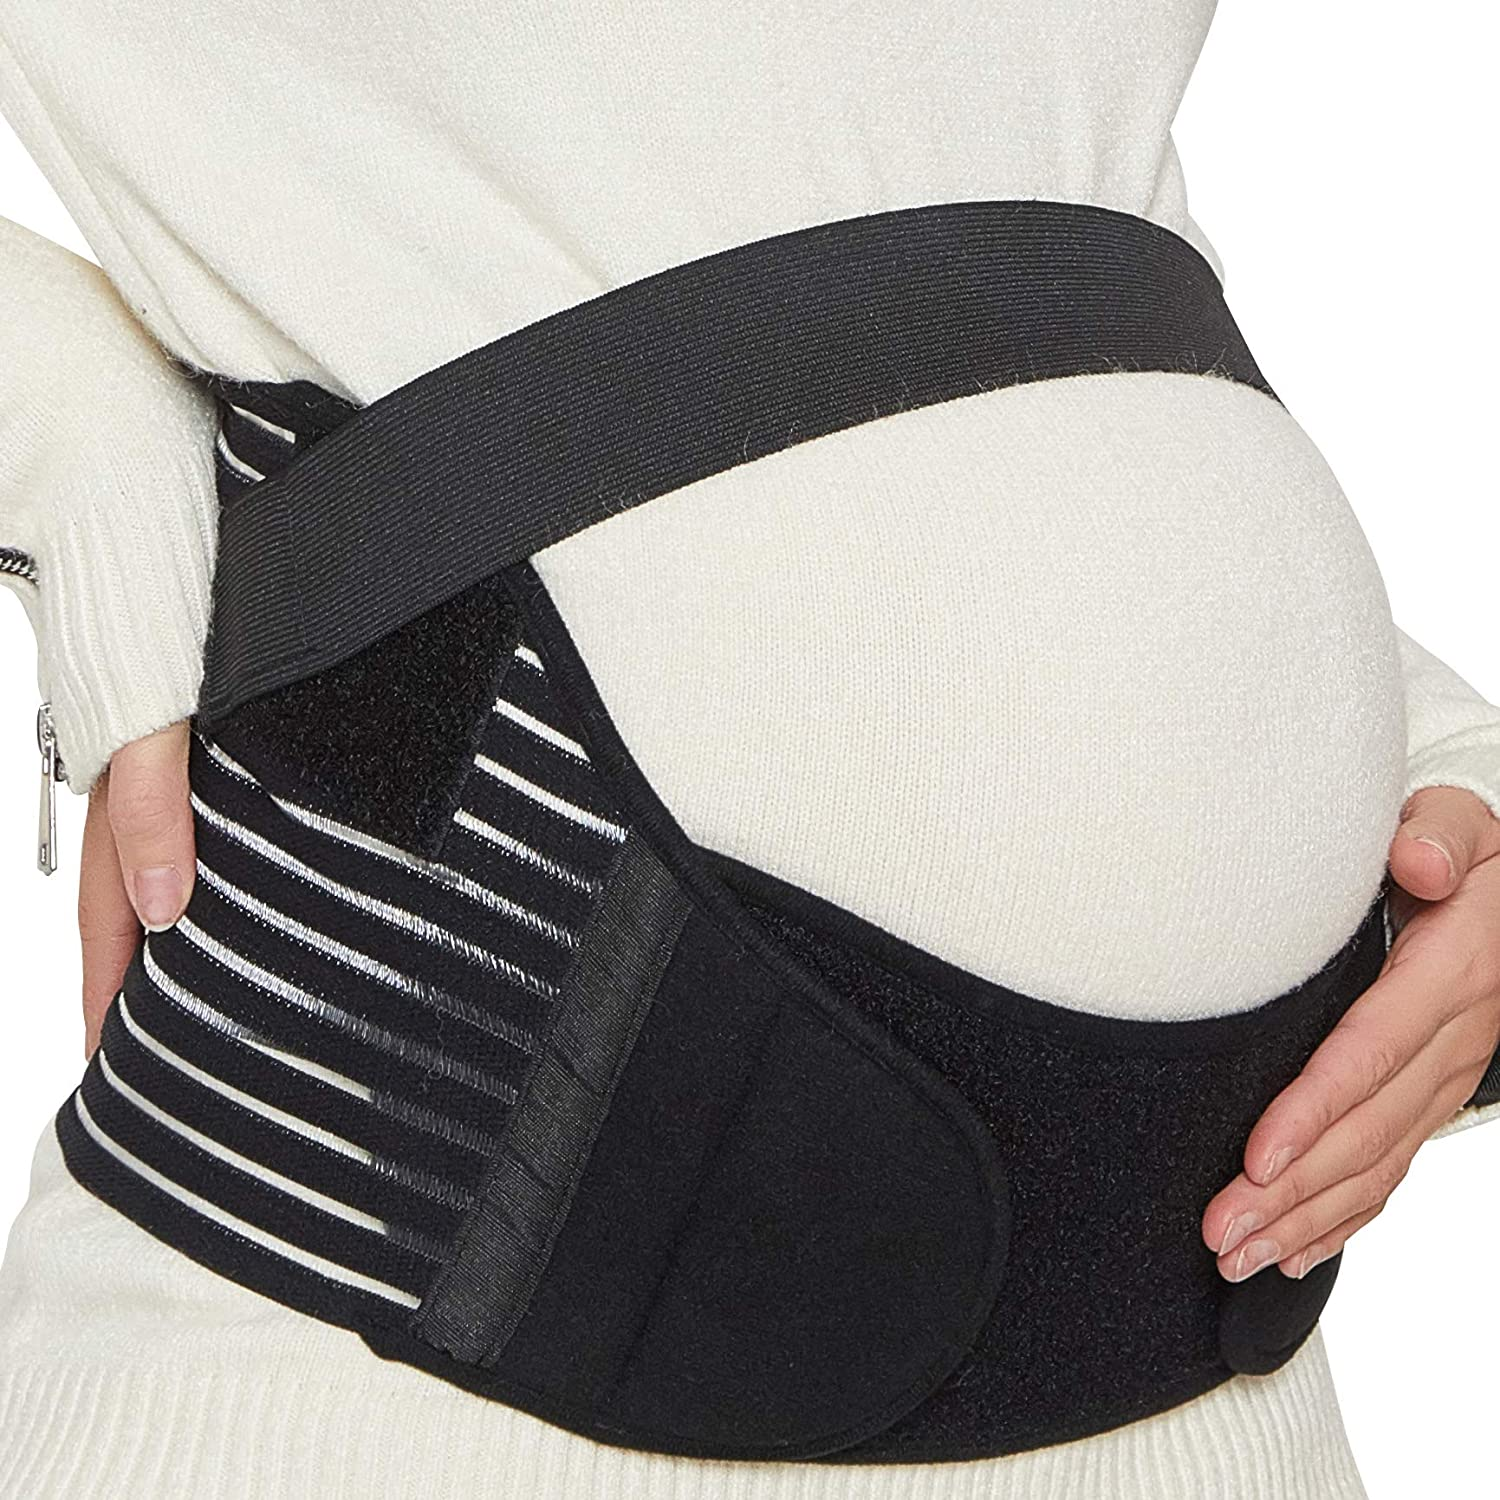 Review of NeoTech Care Pregnancy Support Maternity Belt, Waist/Back/Abdomen Band